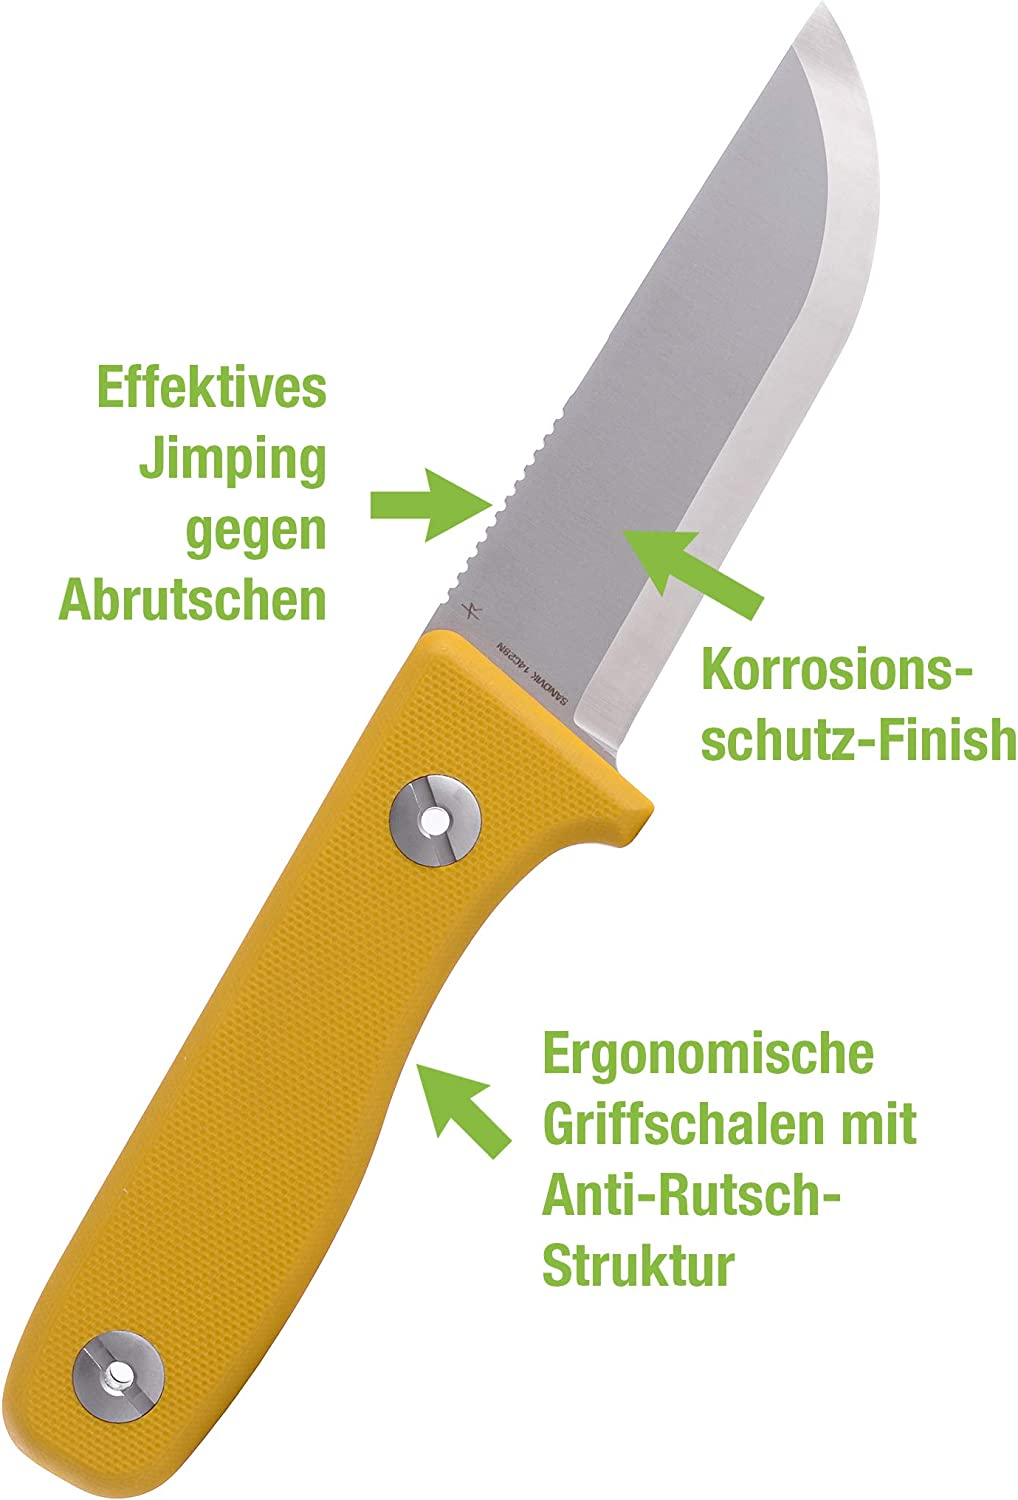 Schnitzel Du Outdoor Knife With Sheath And Fire Steel For Children And Youths From 10 Years Rust Proof With Various Colours Children S Knife Carving Knife Sheath Knife Yellow Sport Freizeit